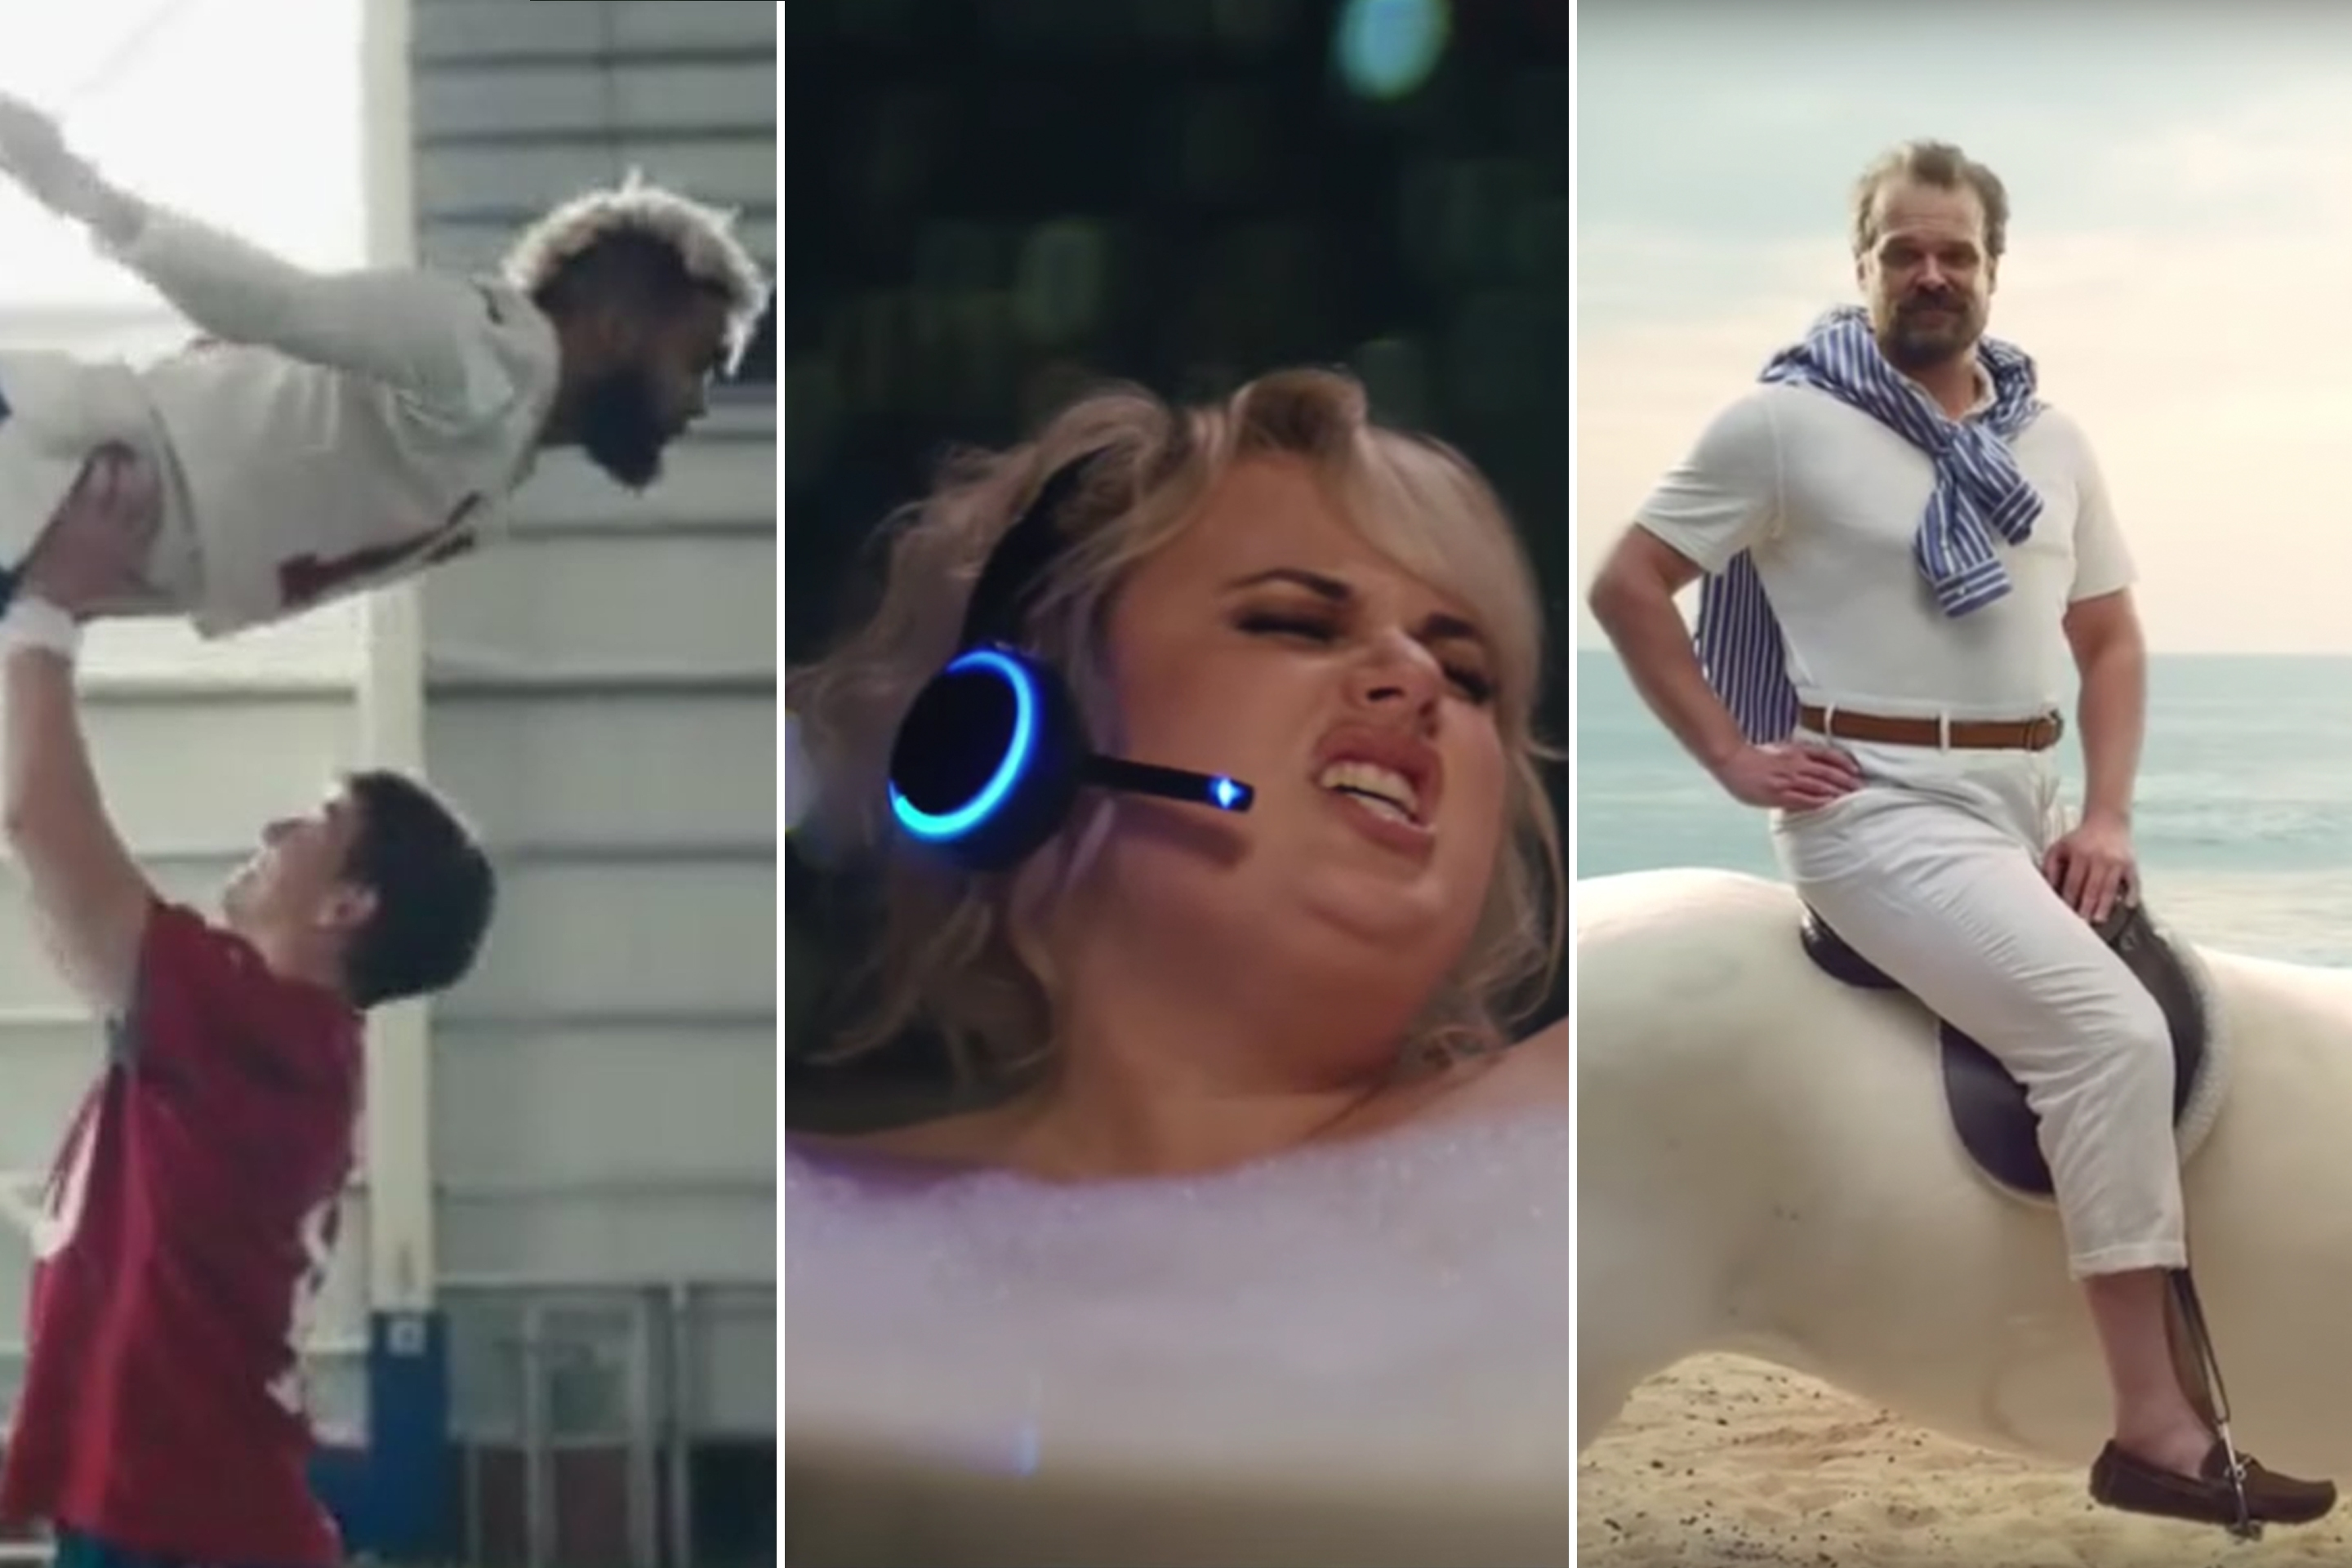 Best Super Bowl Ads For 2018: Amazon Alexa, Tide, Nfl | Money within Super Bowl Ads 2018